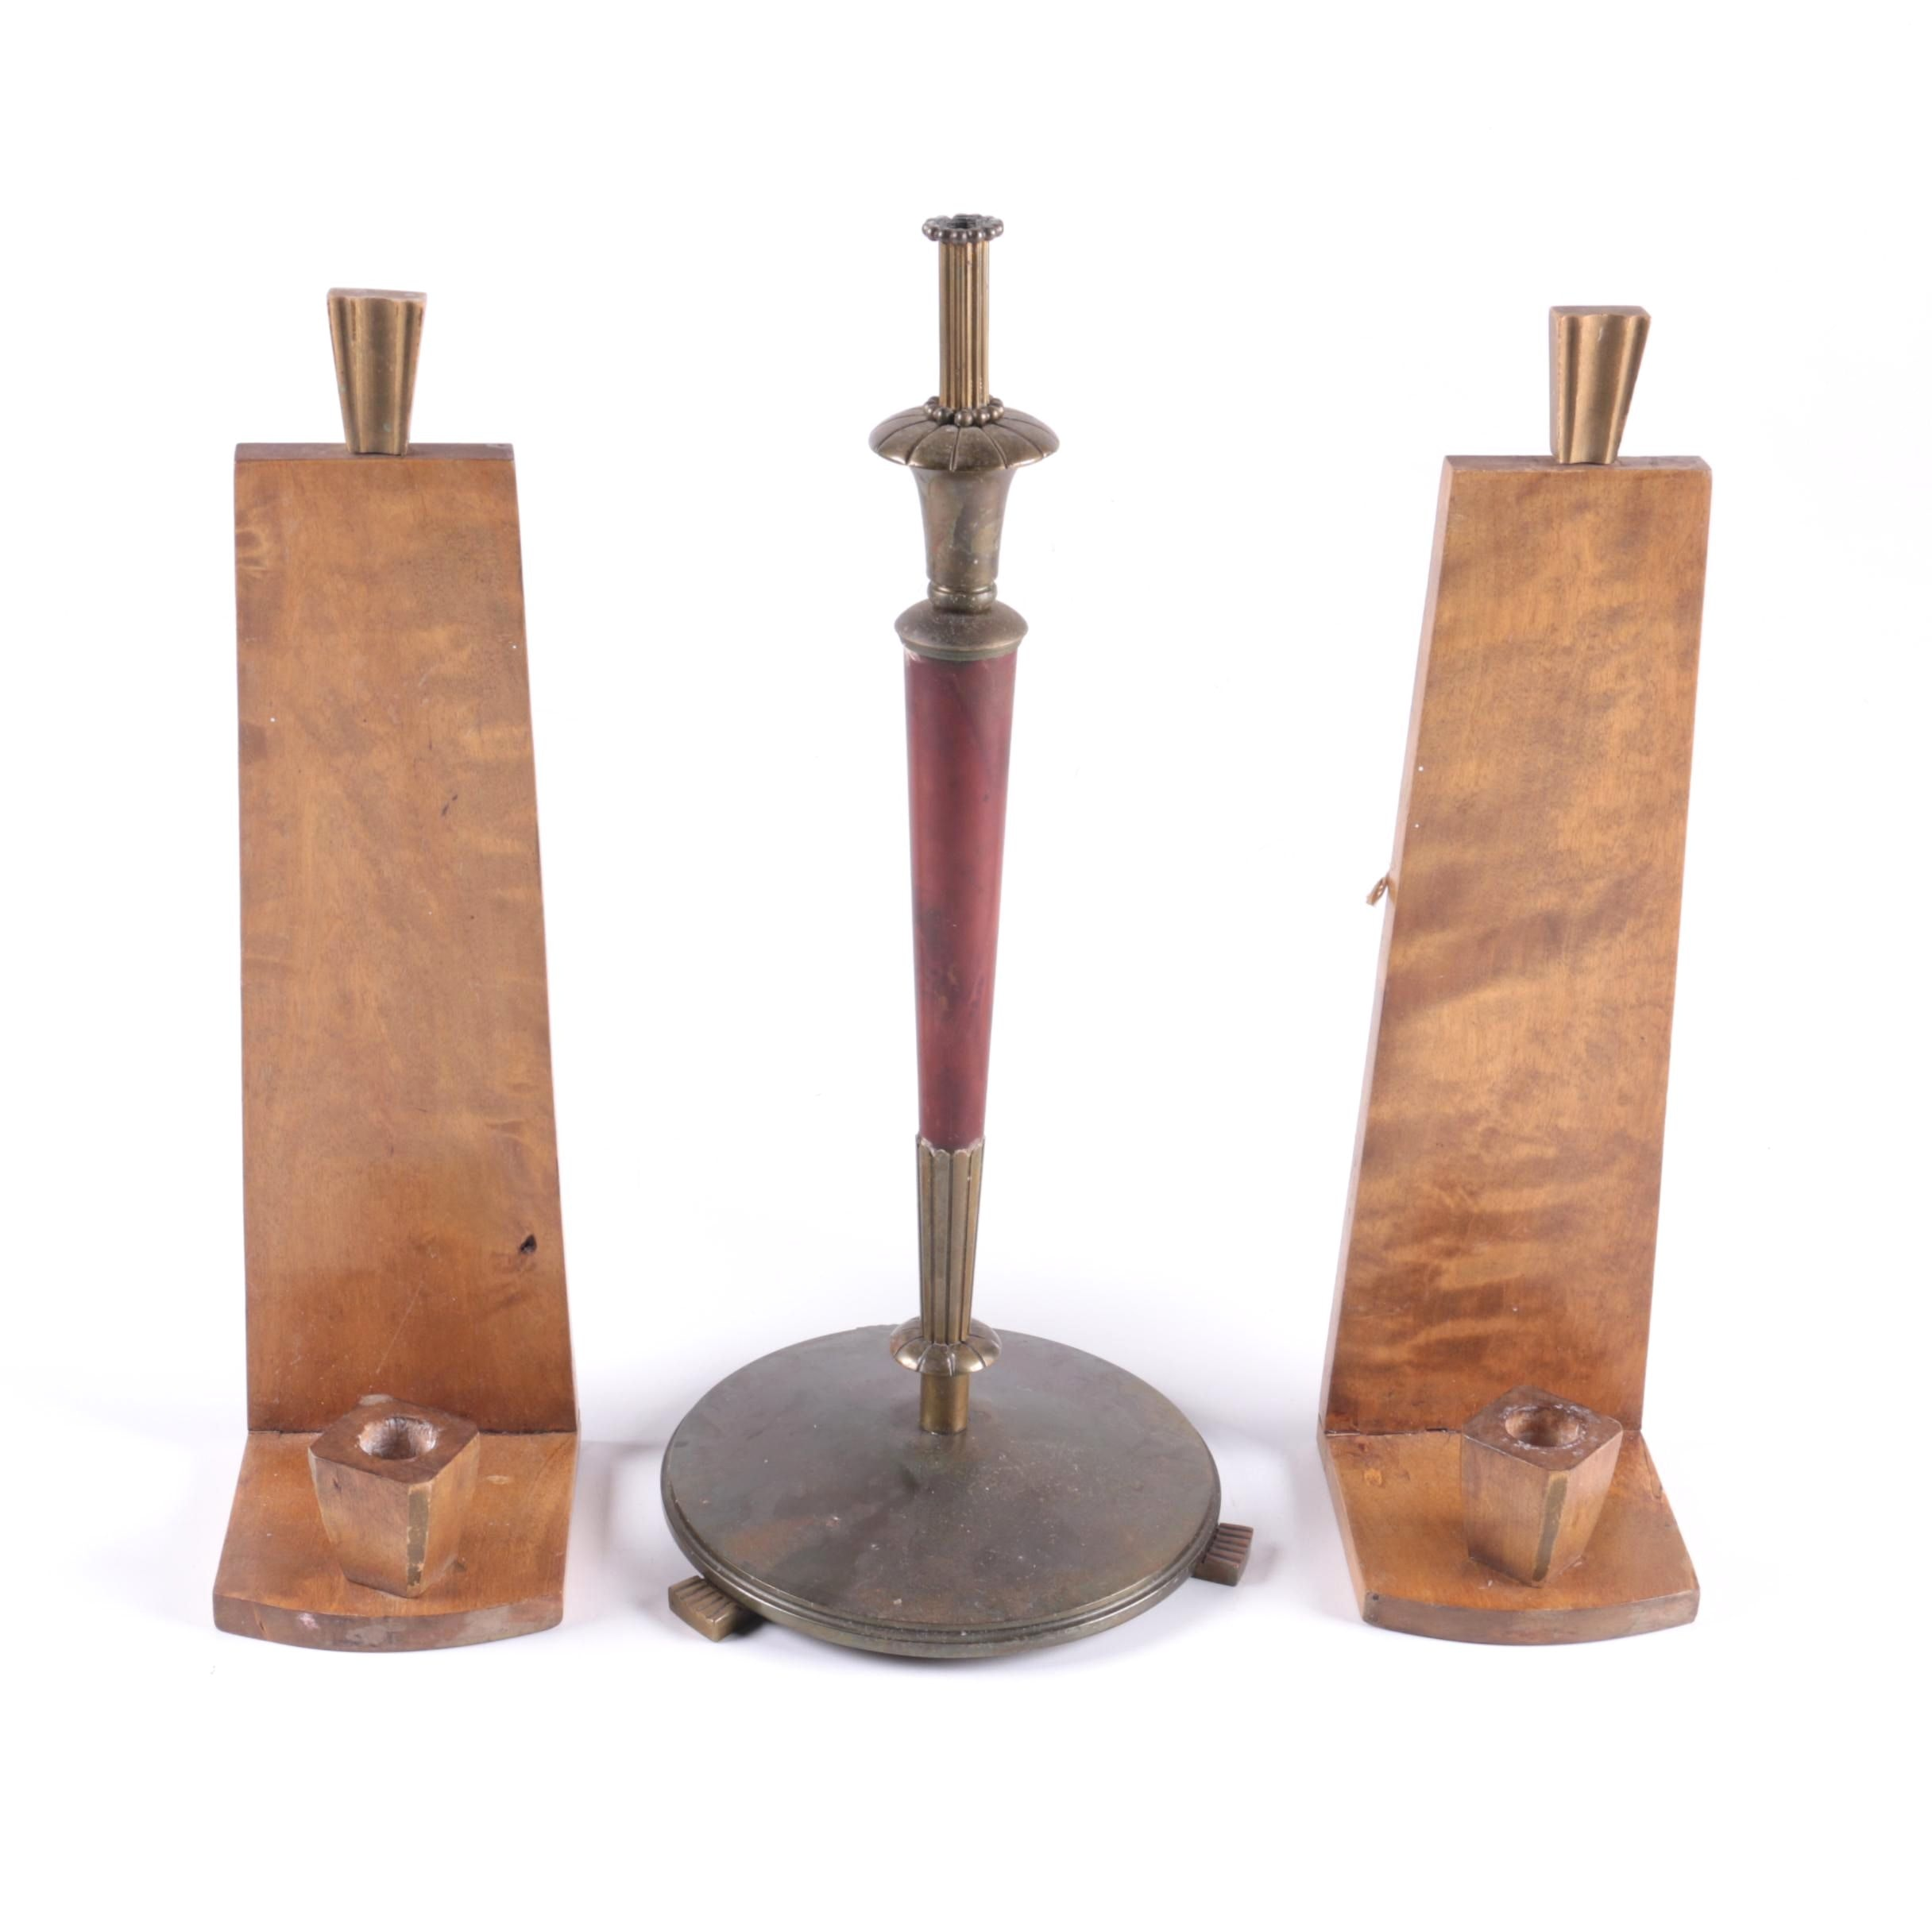 Grouping of Candle Holders